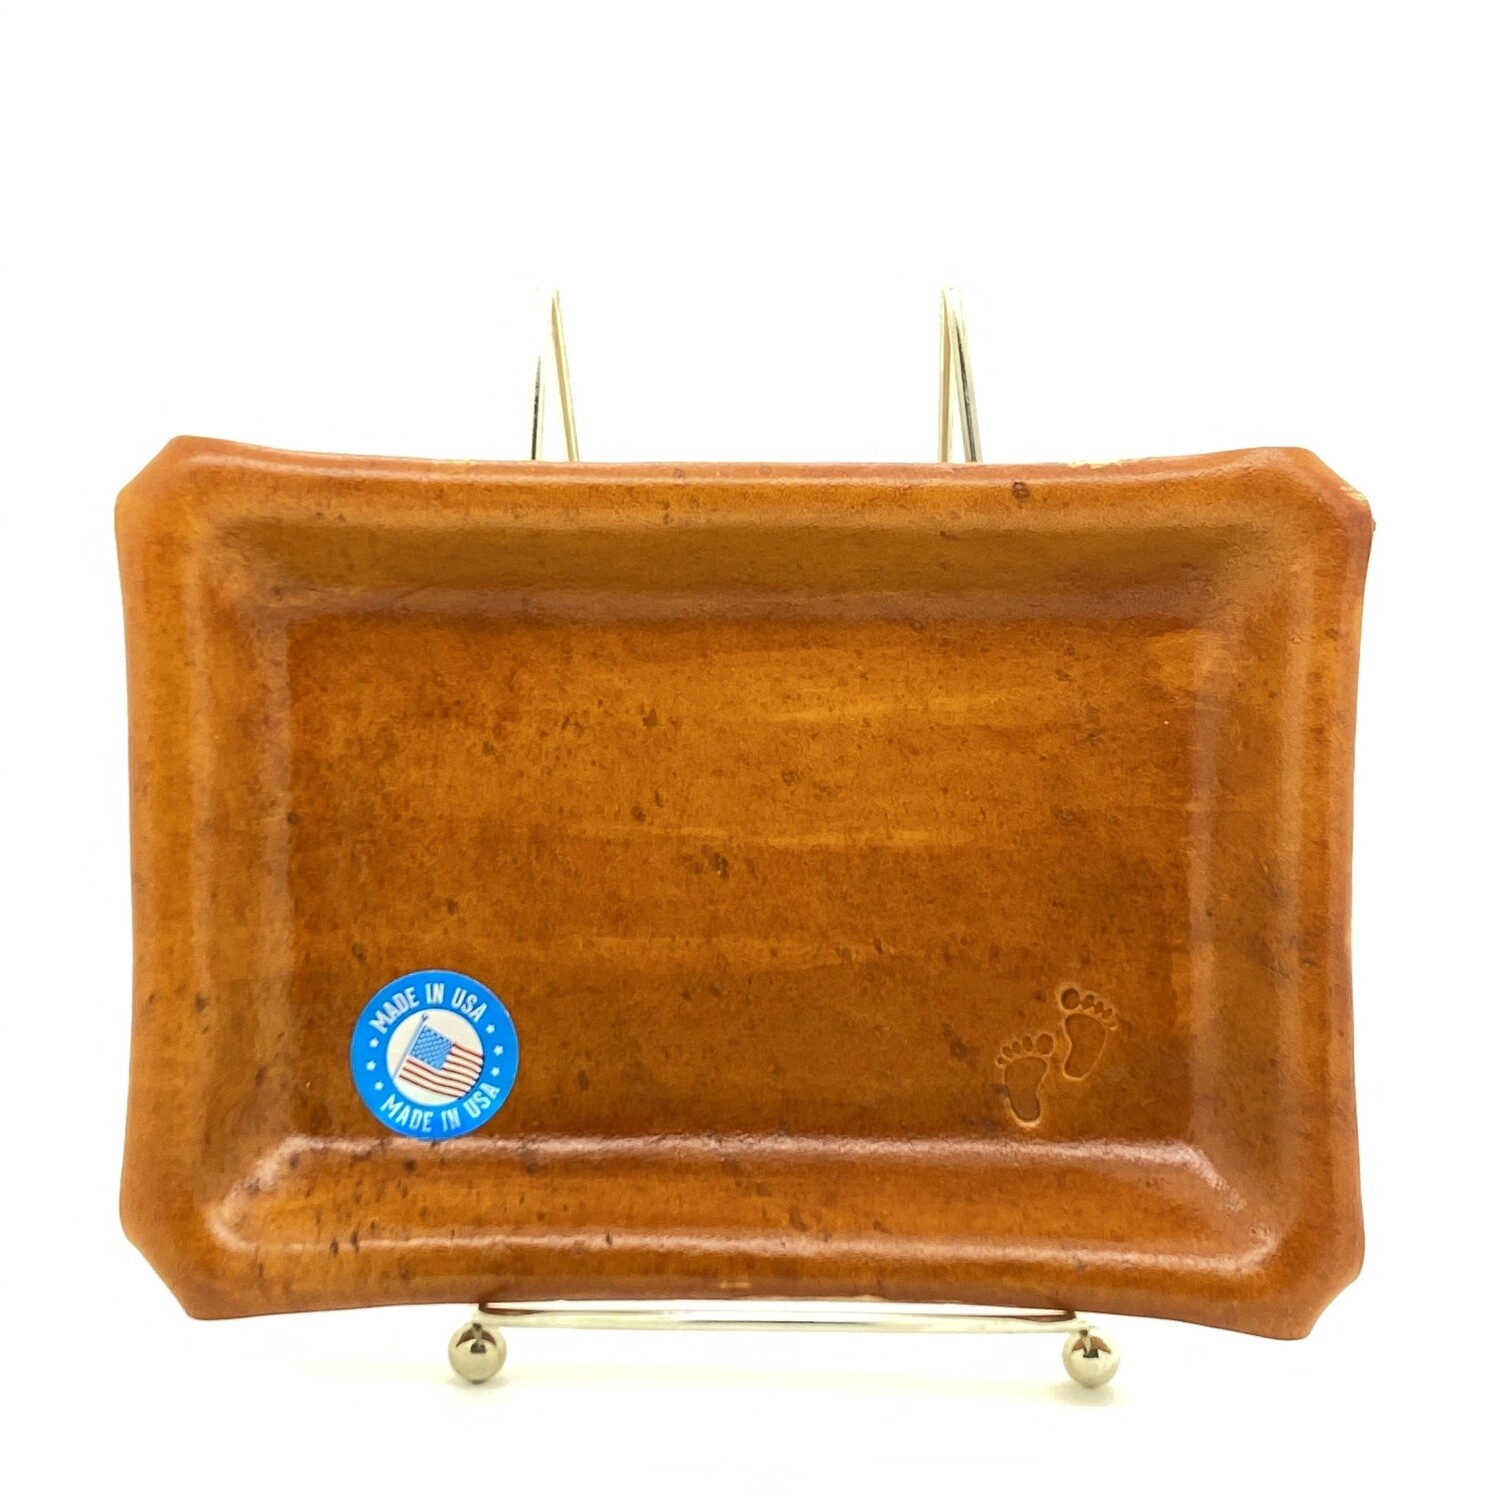 "Jason Blue Leather Rolling Tray - Small 5""x7'"